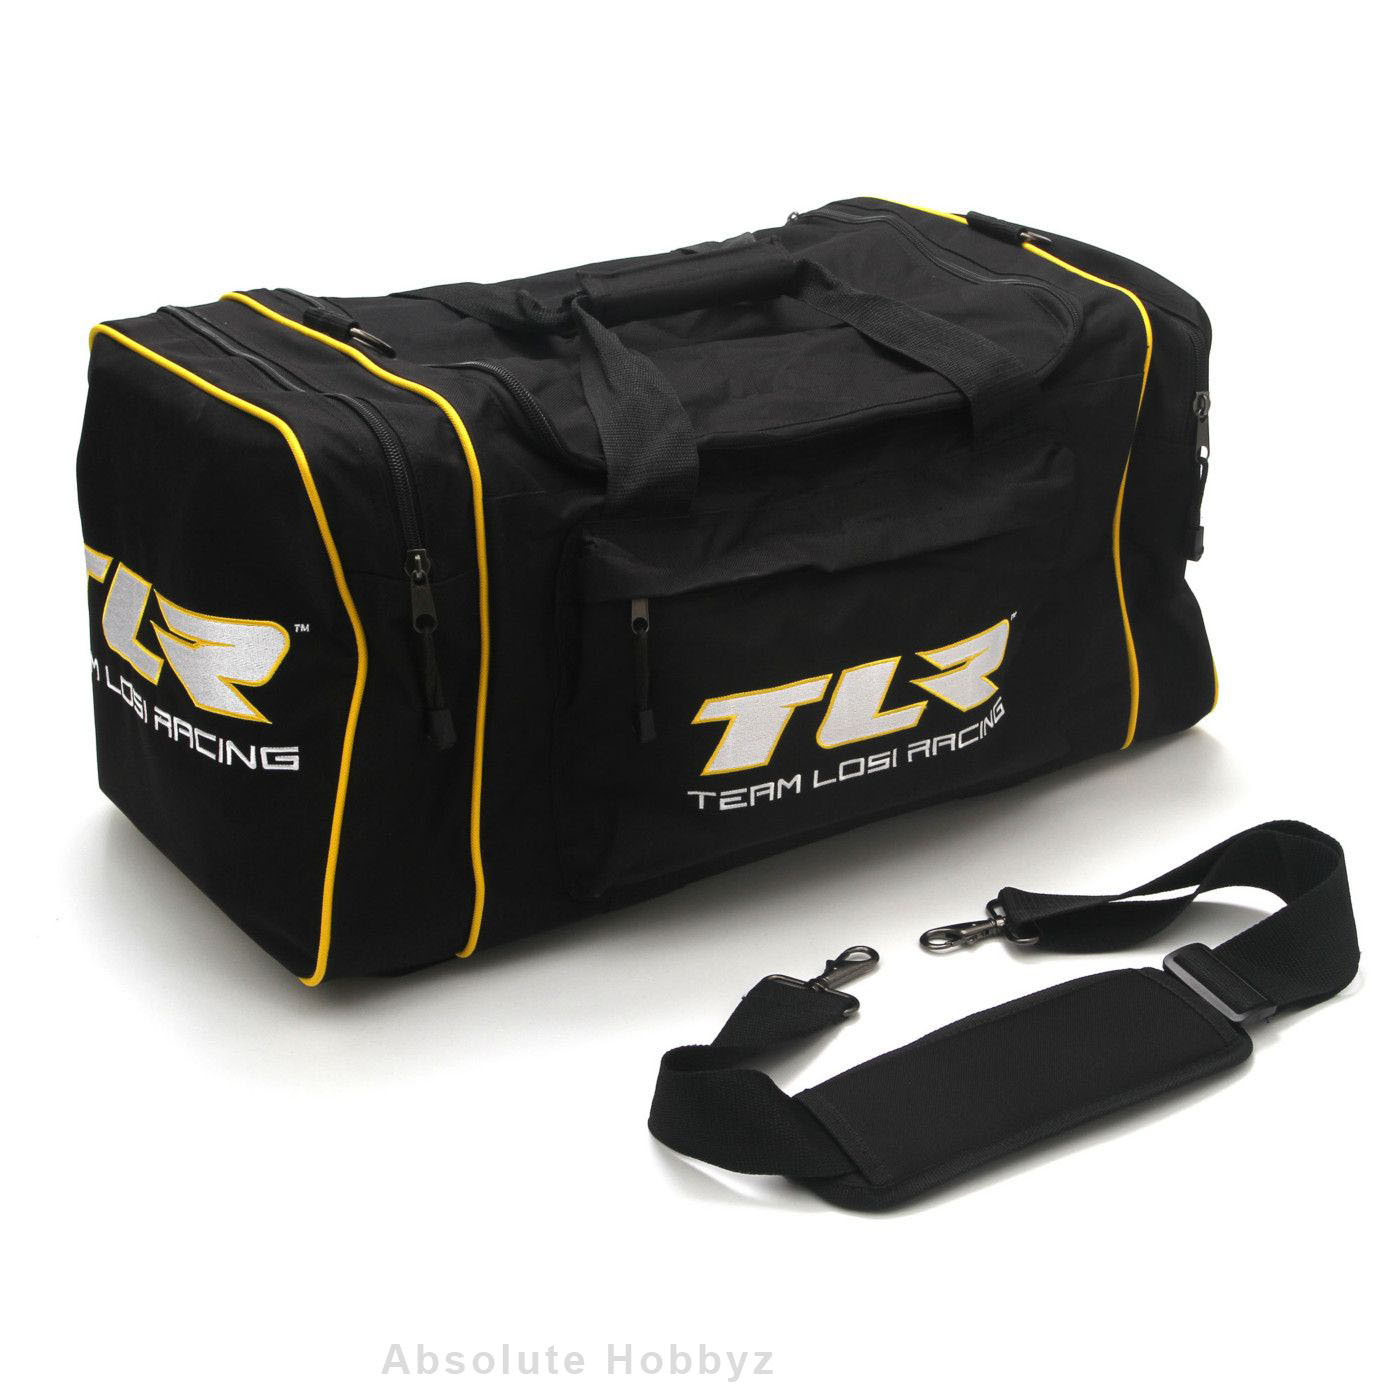 tower hobby airplanes with Team Losi Racing Tlr Embroidered Cargo Bag P 508778 on Kyosho Grooved O Ring Orange P3for Oil Shock 8pcs p 495436 in addition Balsa Glider Plans Free additionally Wti0001p also Showthread additionally Wti0001p.